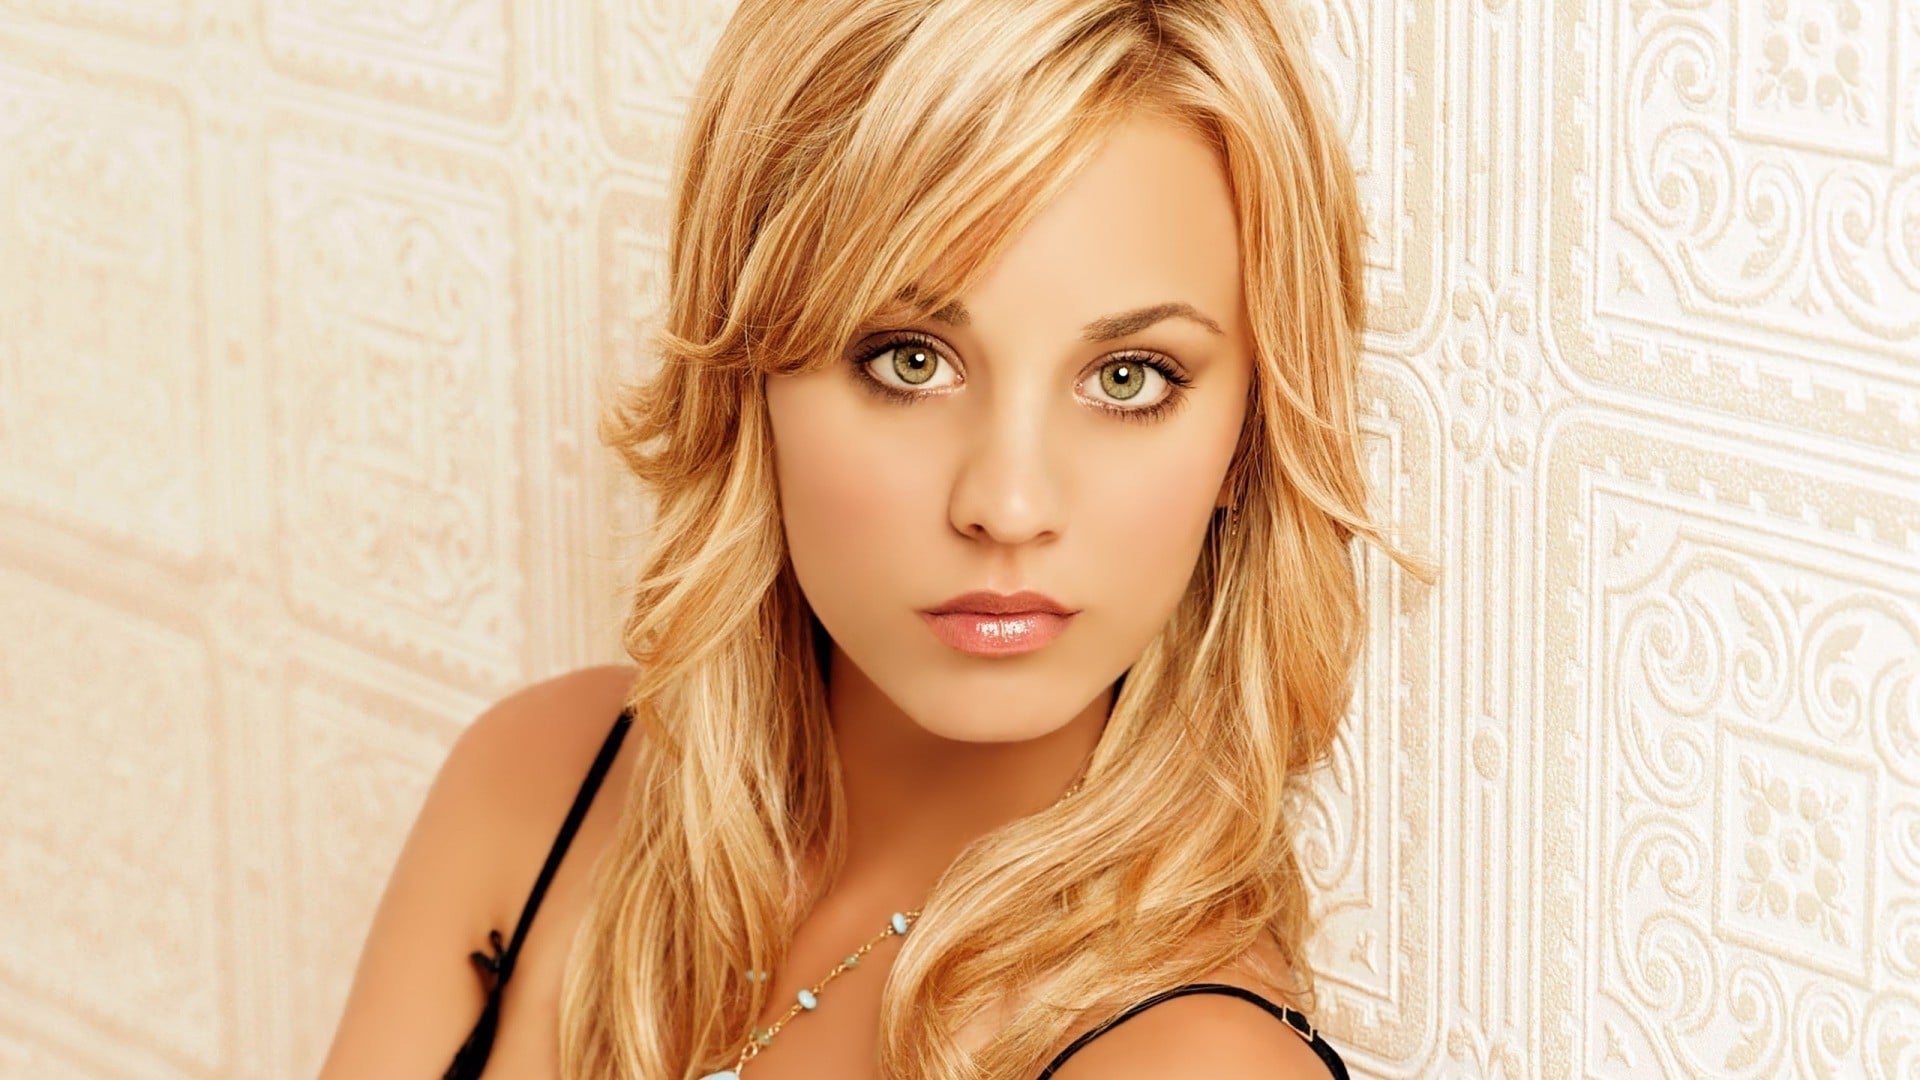 Kaley-Cuoco-Net-Worth.jpg